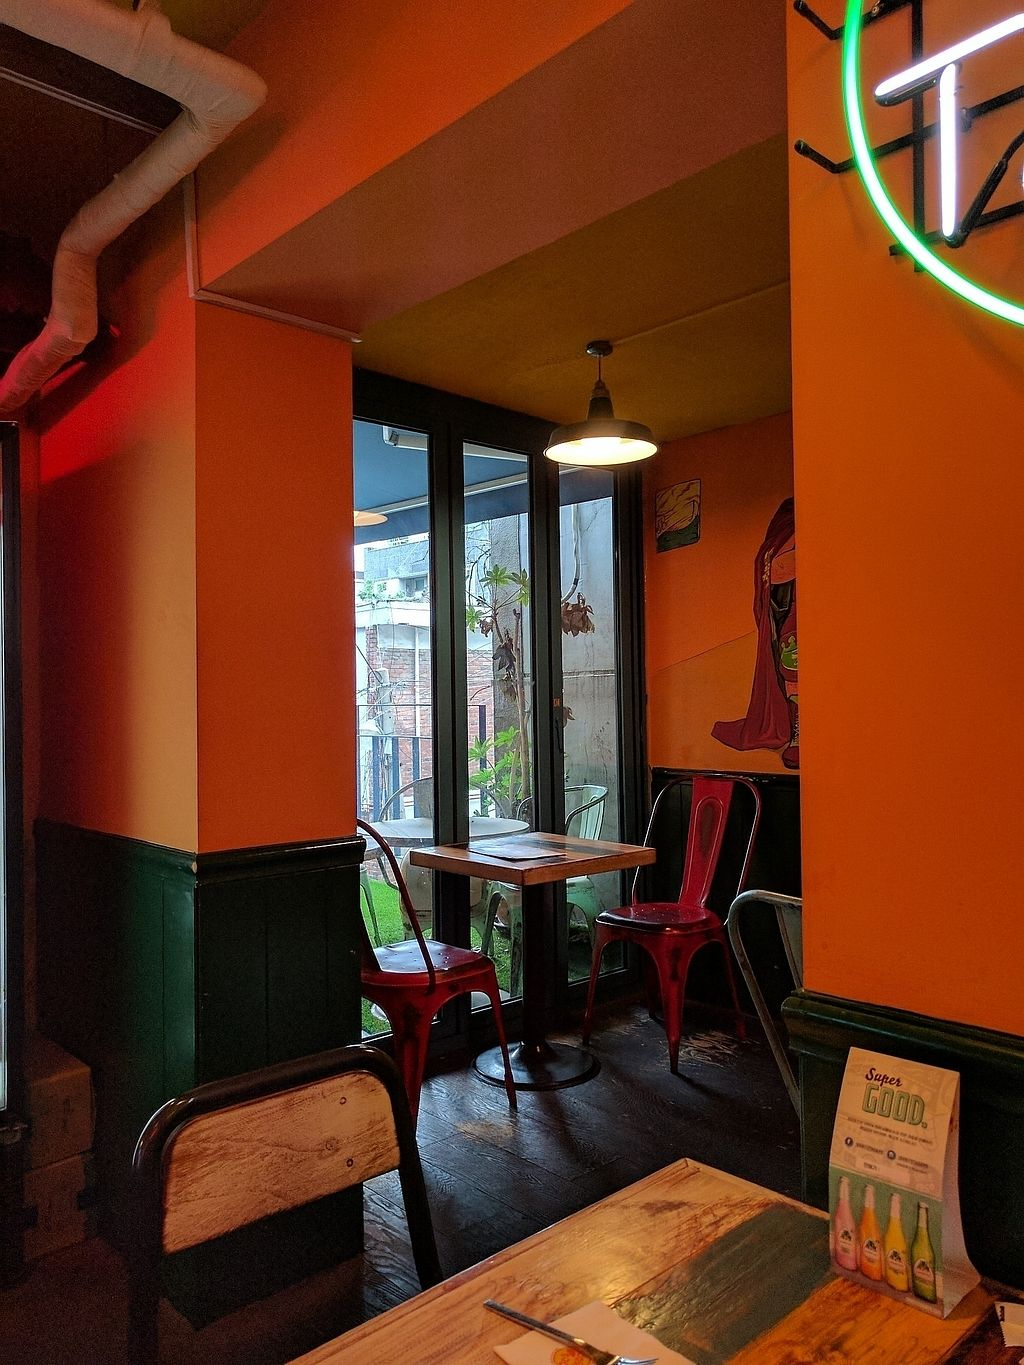 "Photo of Dos Tacos - Gwanak  by <a href=""/members/profile/PhillipPark"">PhillipPark</a> <br/>inside the restaurant <br/> July 10, 2017  - <a href='/contact/abuse/image/95674/278922'>Report</a>"